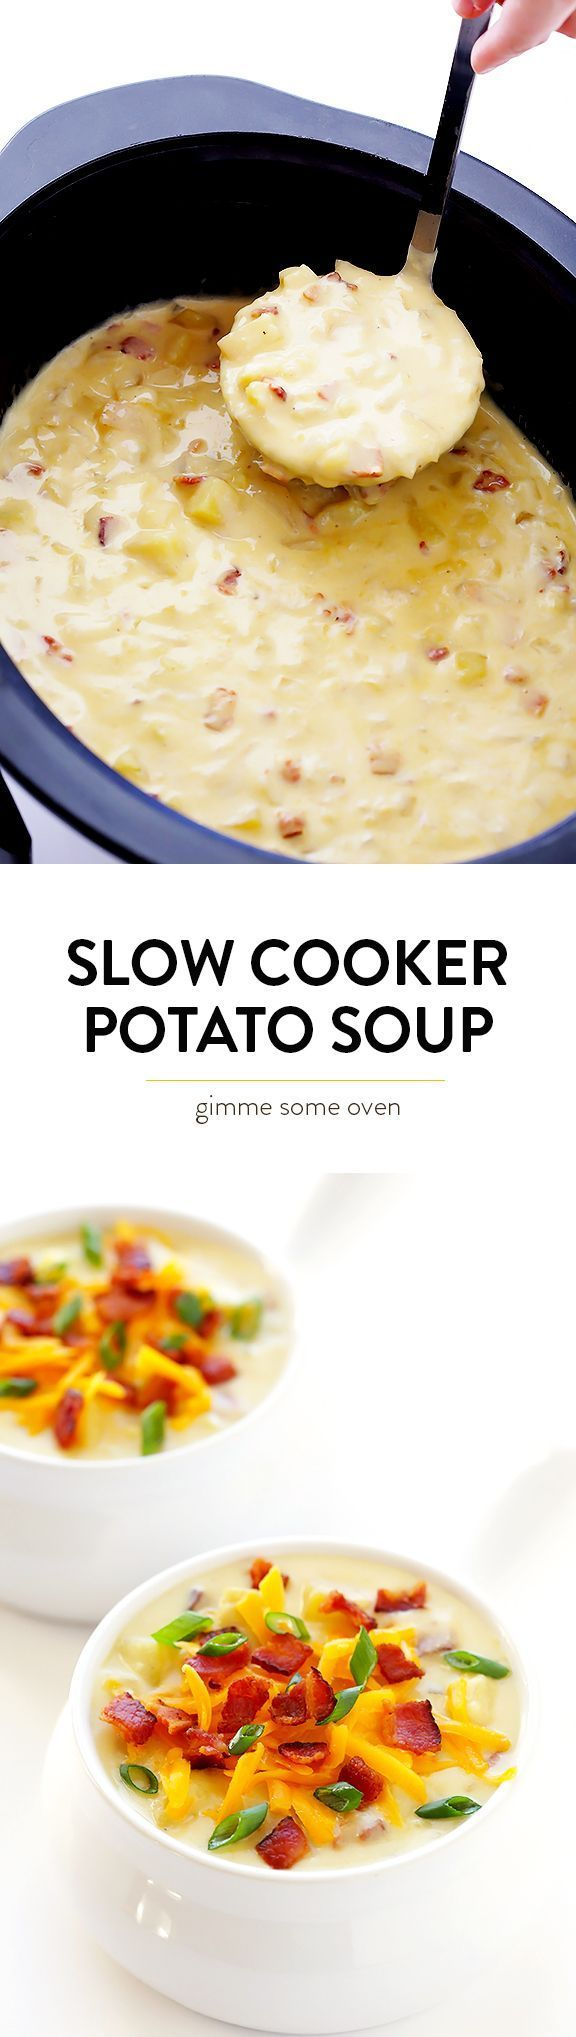 This Slow Cooker Potato Soup recipe is thick and creamy (without using heavy cream), it's wonderfully flavorful, and it's made extra easy in the crock pot! | http://gimmesomeoven.com